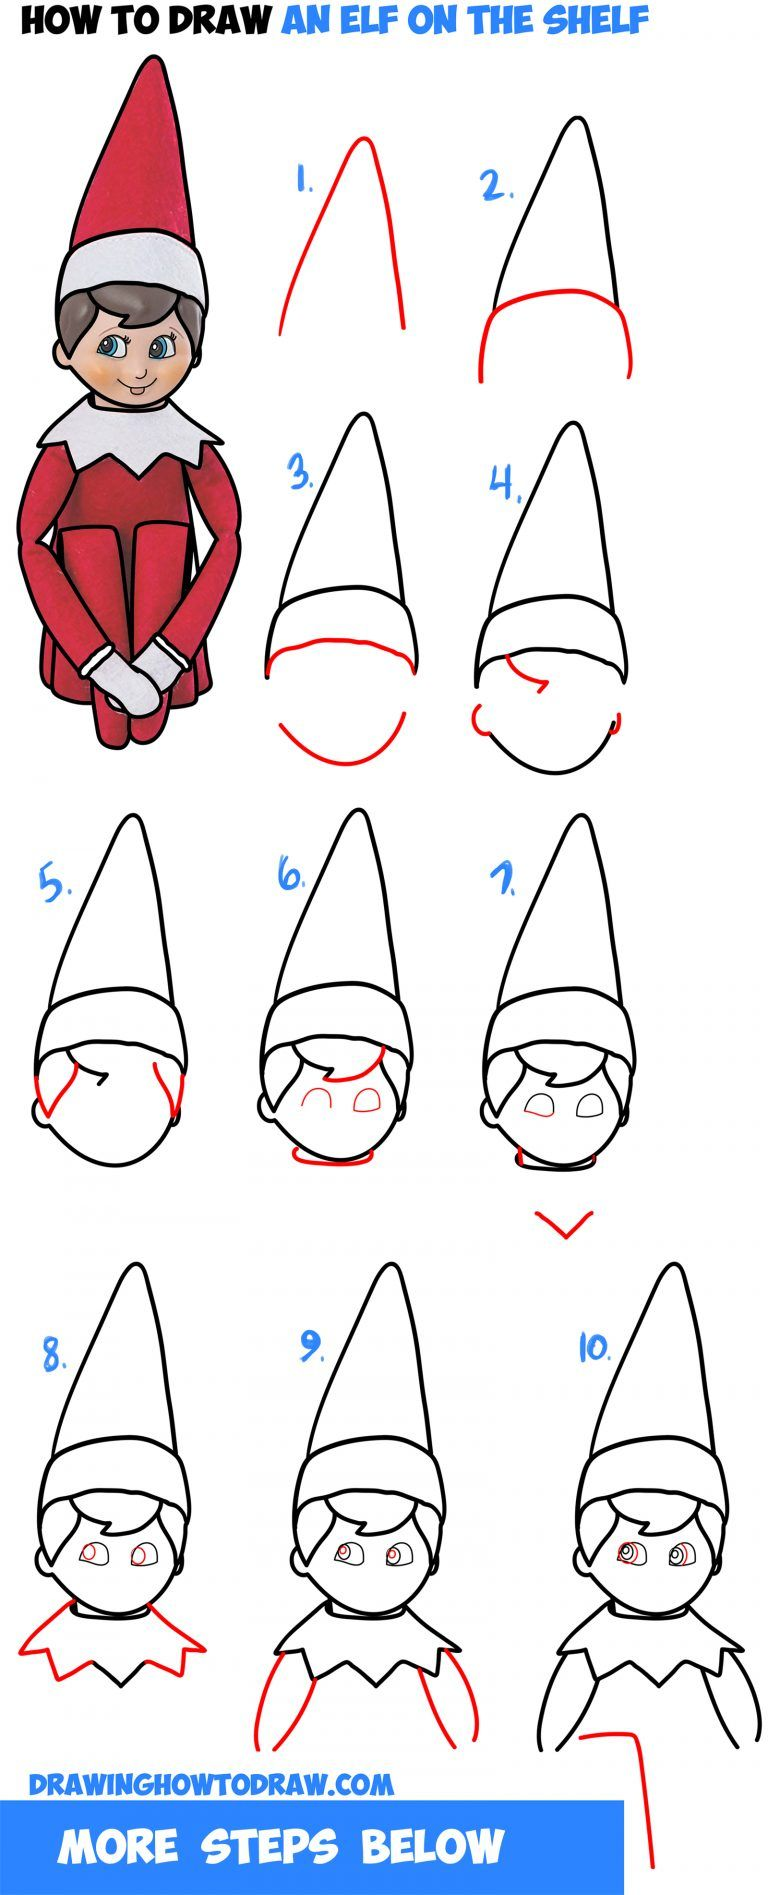 learn how to draw the elf on the shelf easy step by step drawing tutorial for kids beginners - How To Draw A Christmas Elf